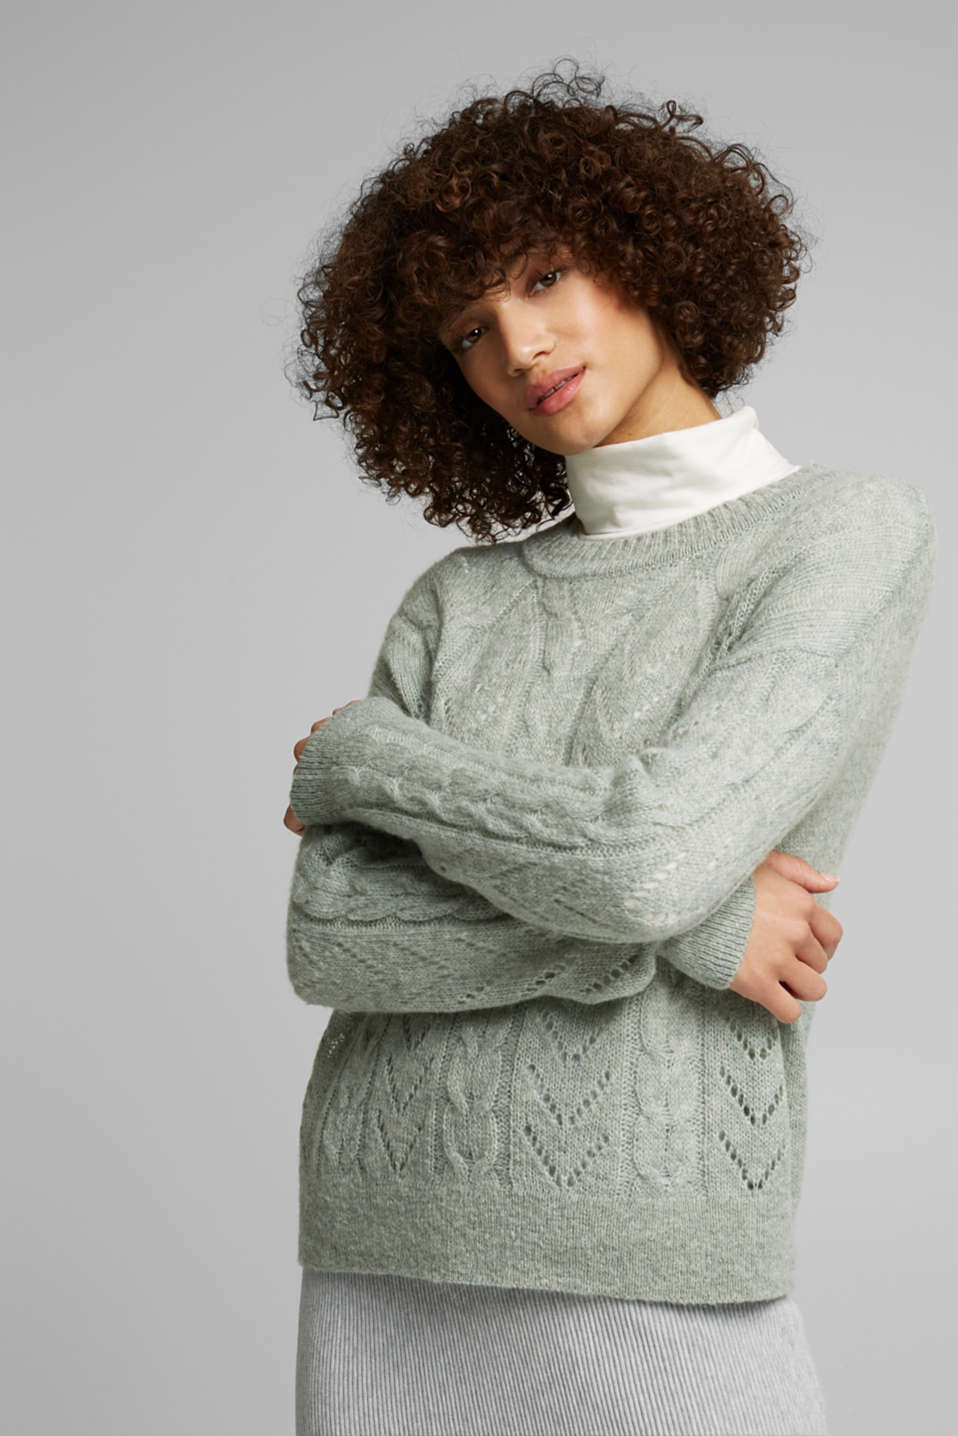 Esprit - With wool and alpaca: jumper with an openwork pattern